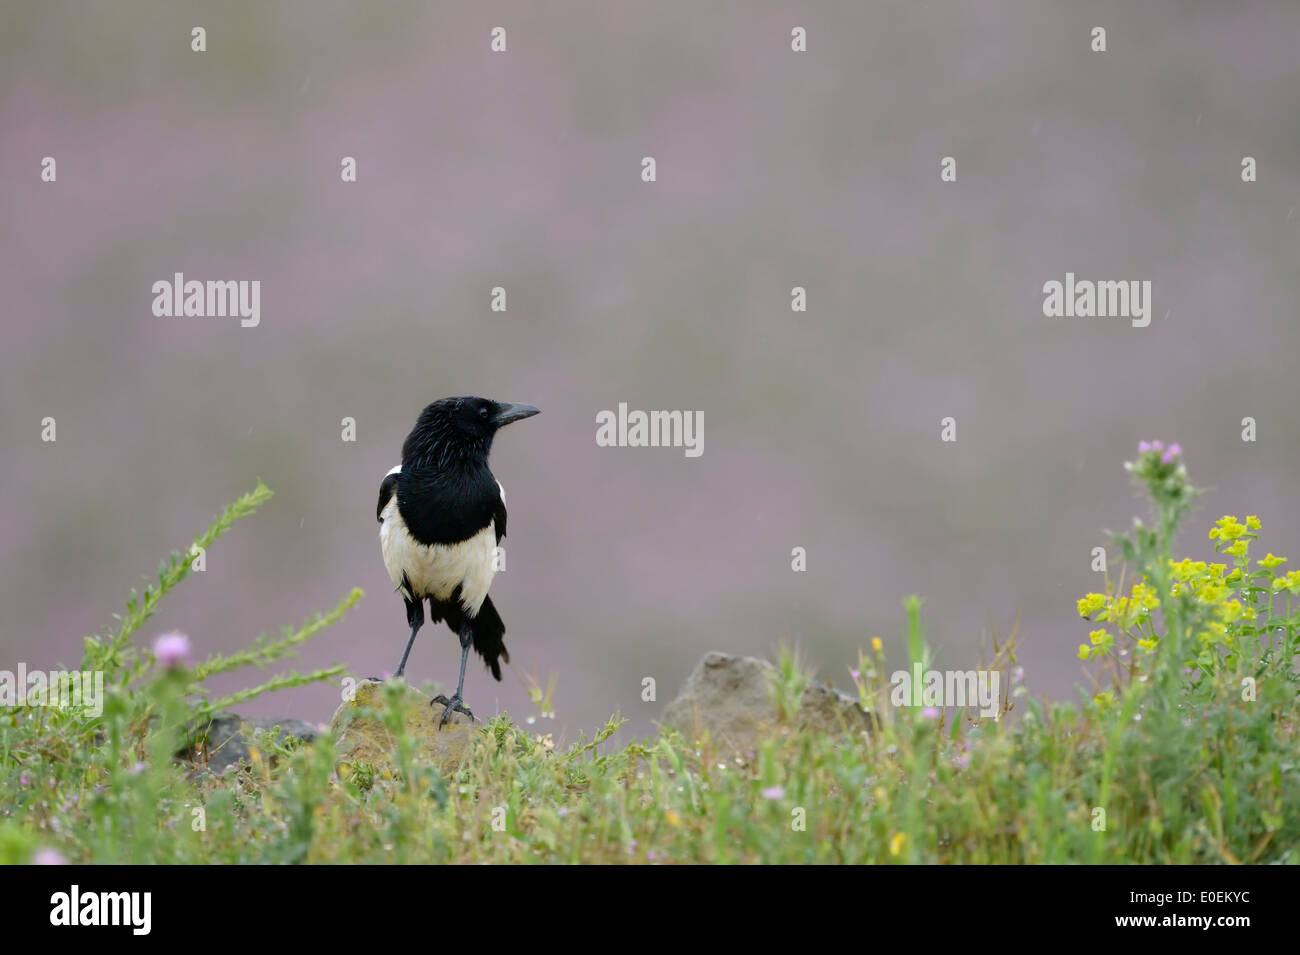 Magpie (Pica pica) with flowers in foreground. - Stock Image